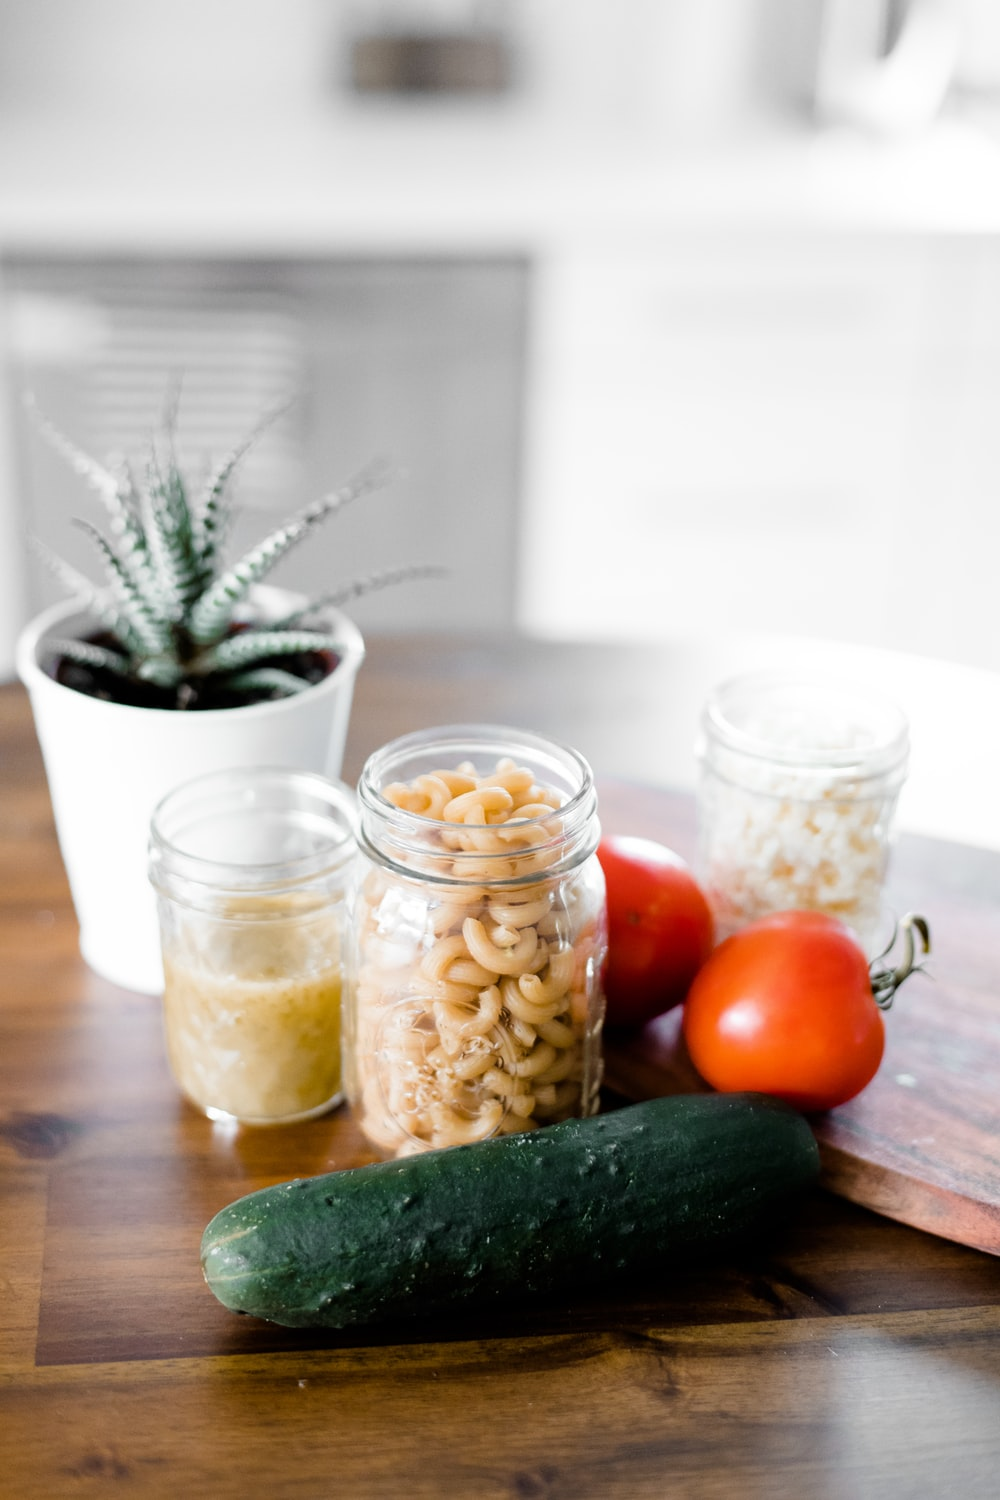 Should You Go Gluten-Free For Healthy Diet